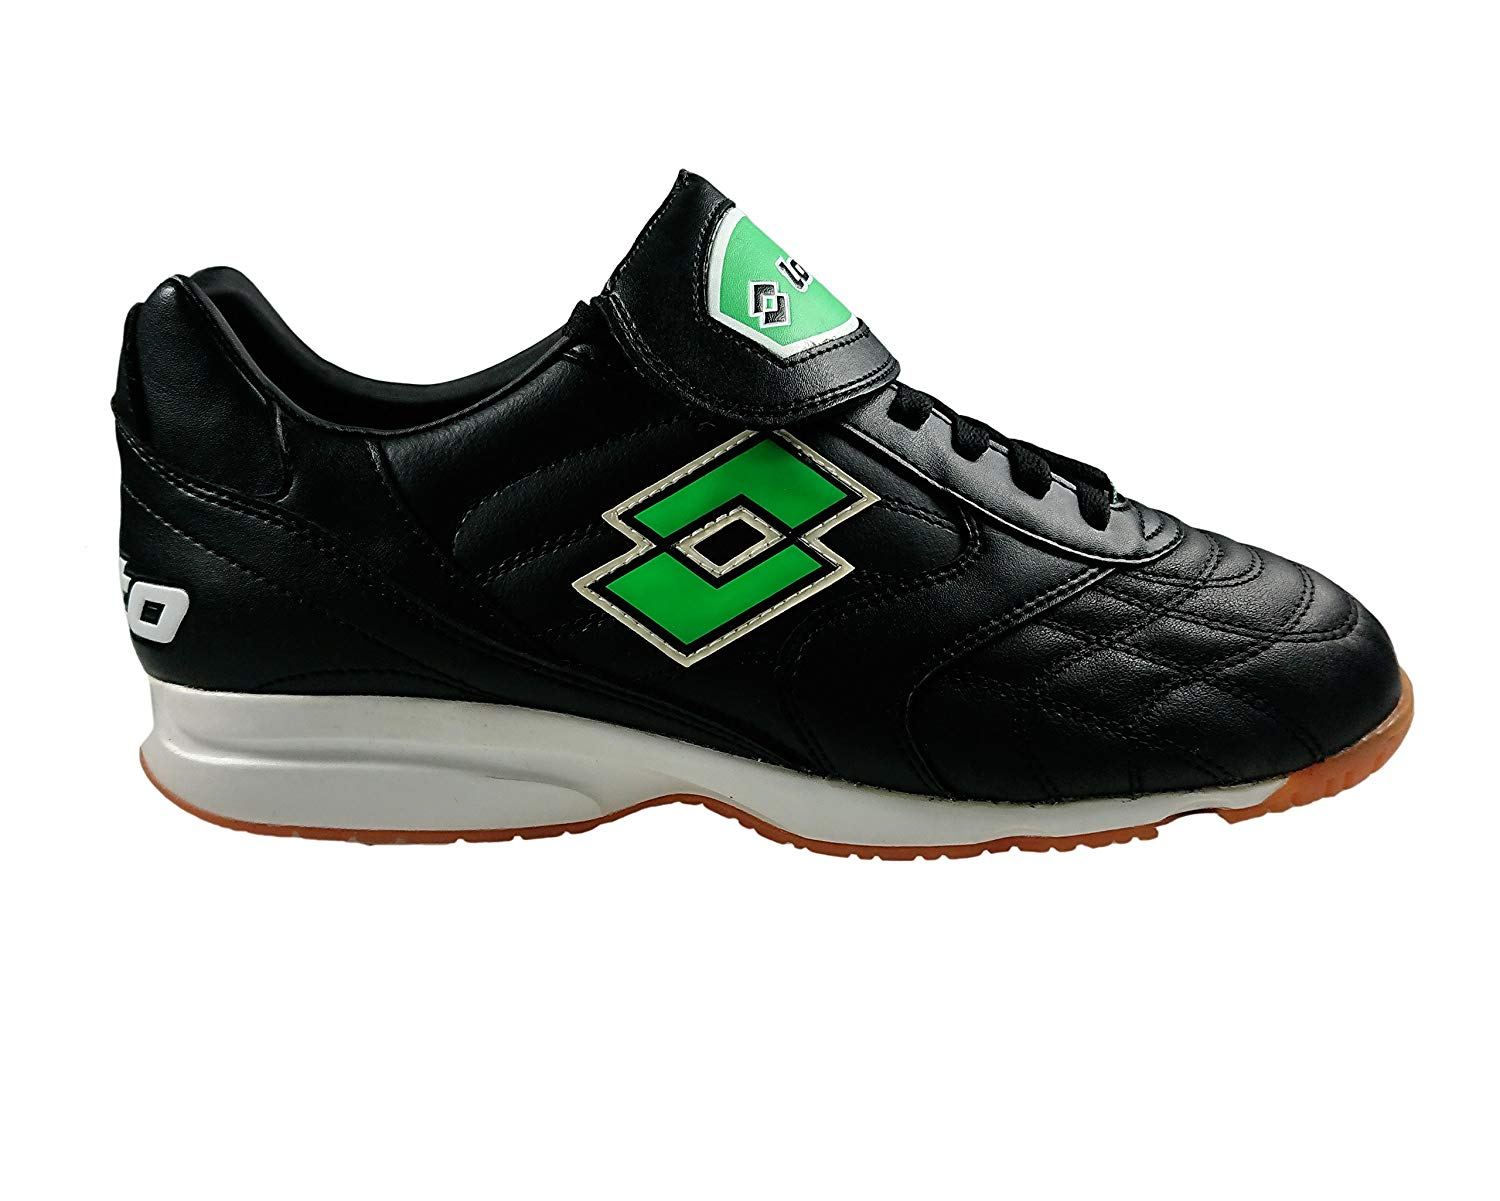 c94334fb9 Cheap Lotto Soccer Shoes, find Lotto Soccer Shoes deals on line at ...